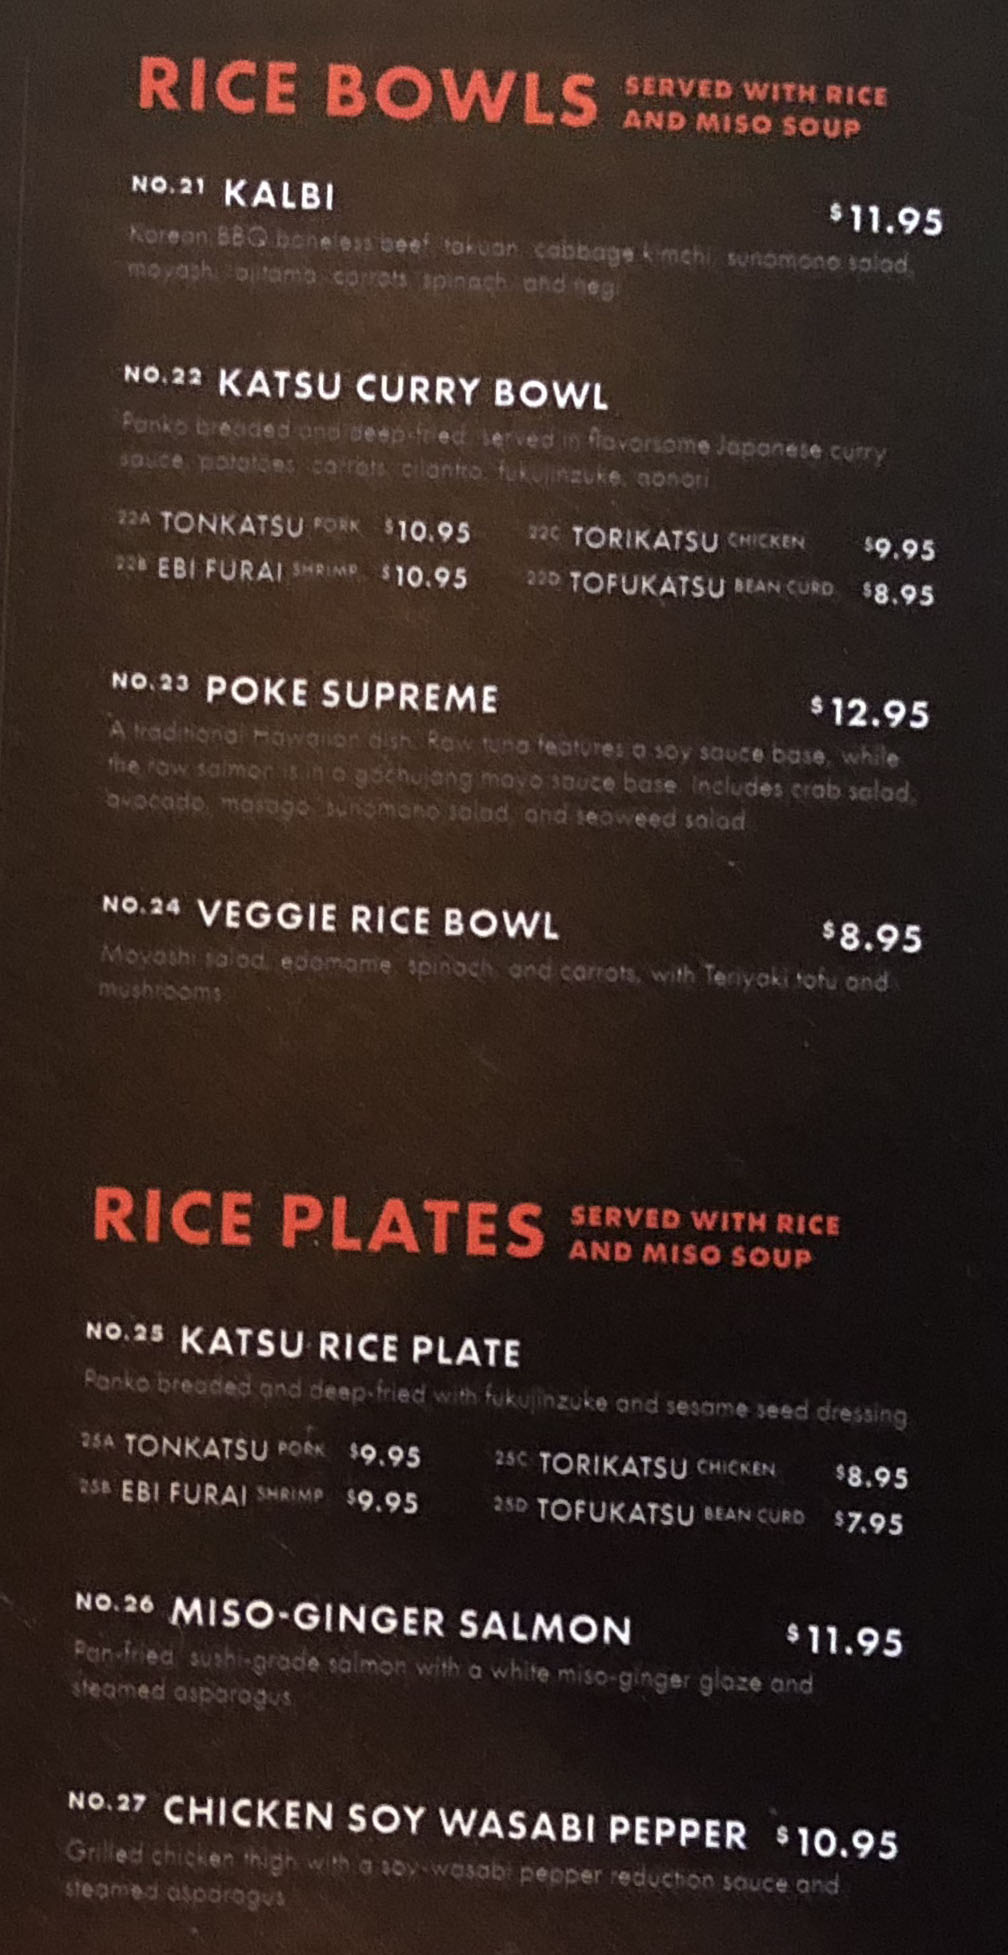 Tonkotsu Ramen Bar menu - rice bowls, rice plates